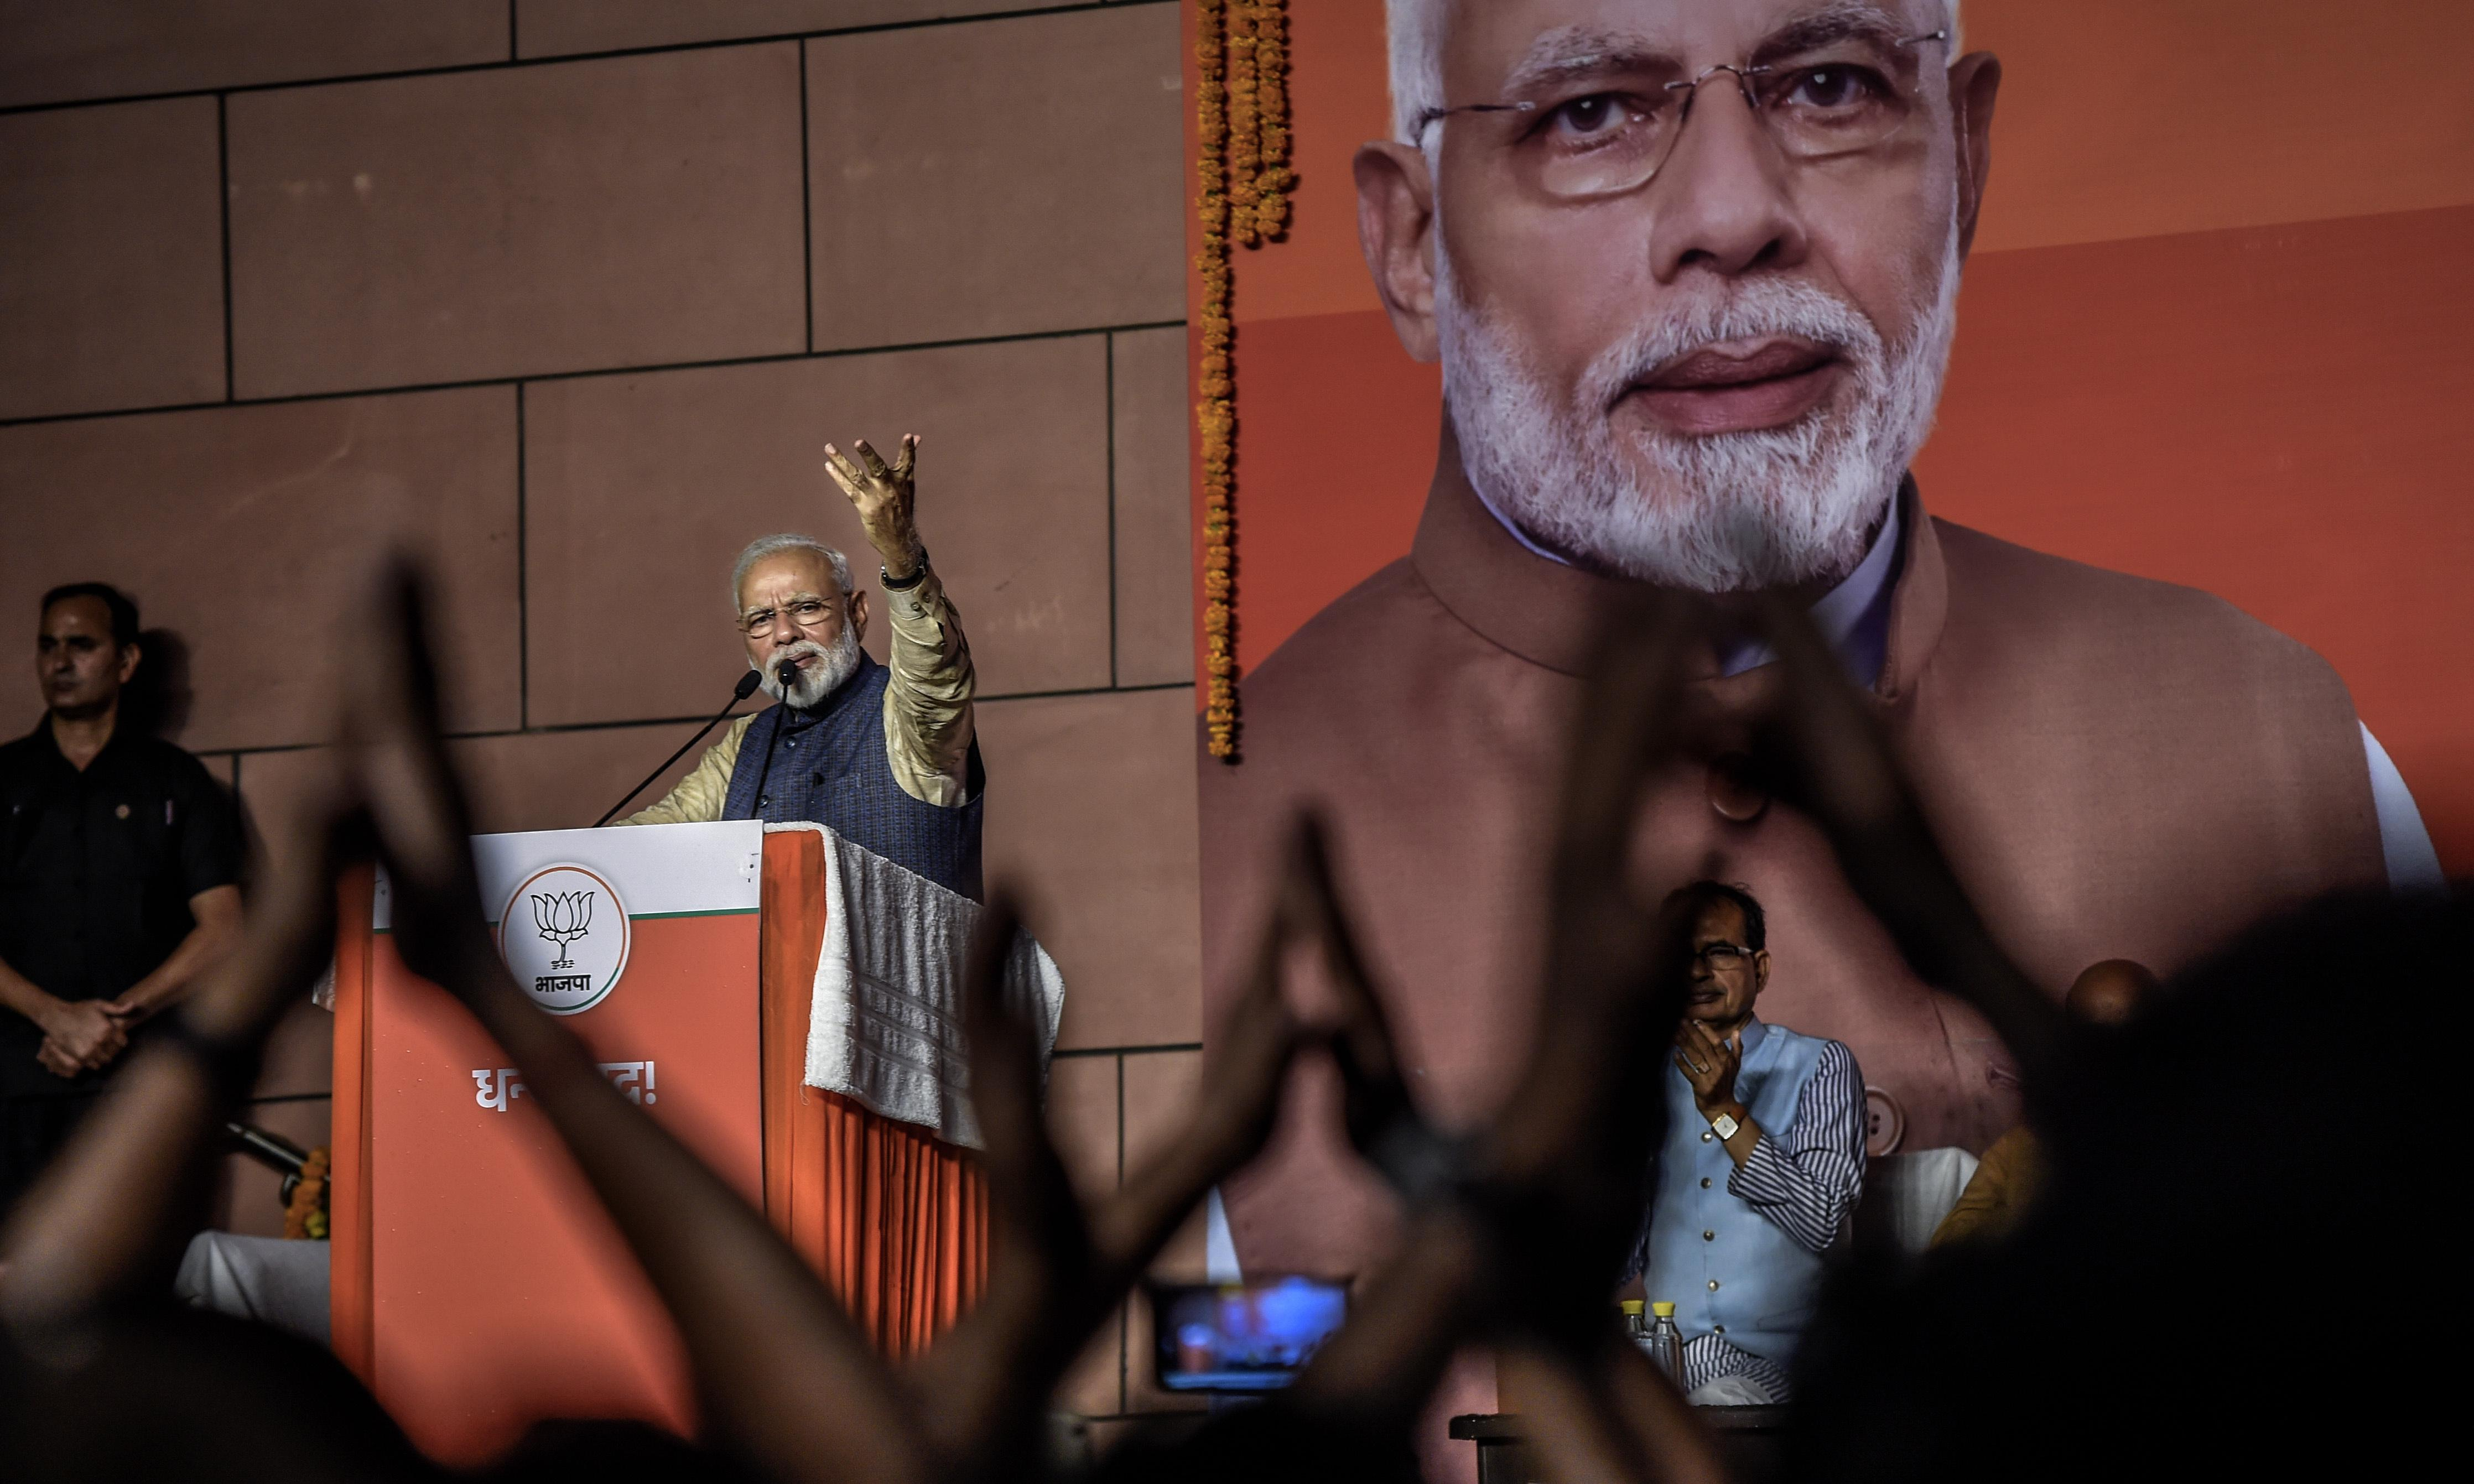 The Guardian view on Narendra Modi's landslide: bad for India's soul